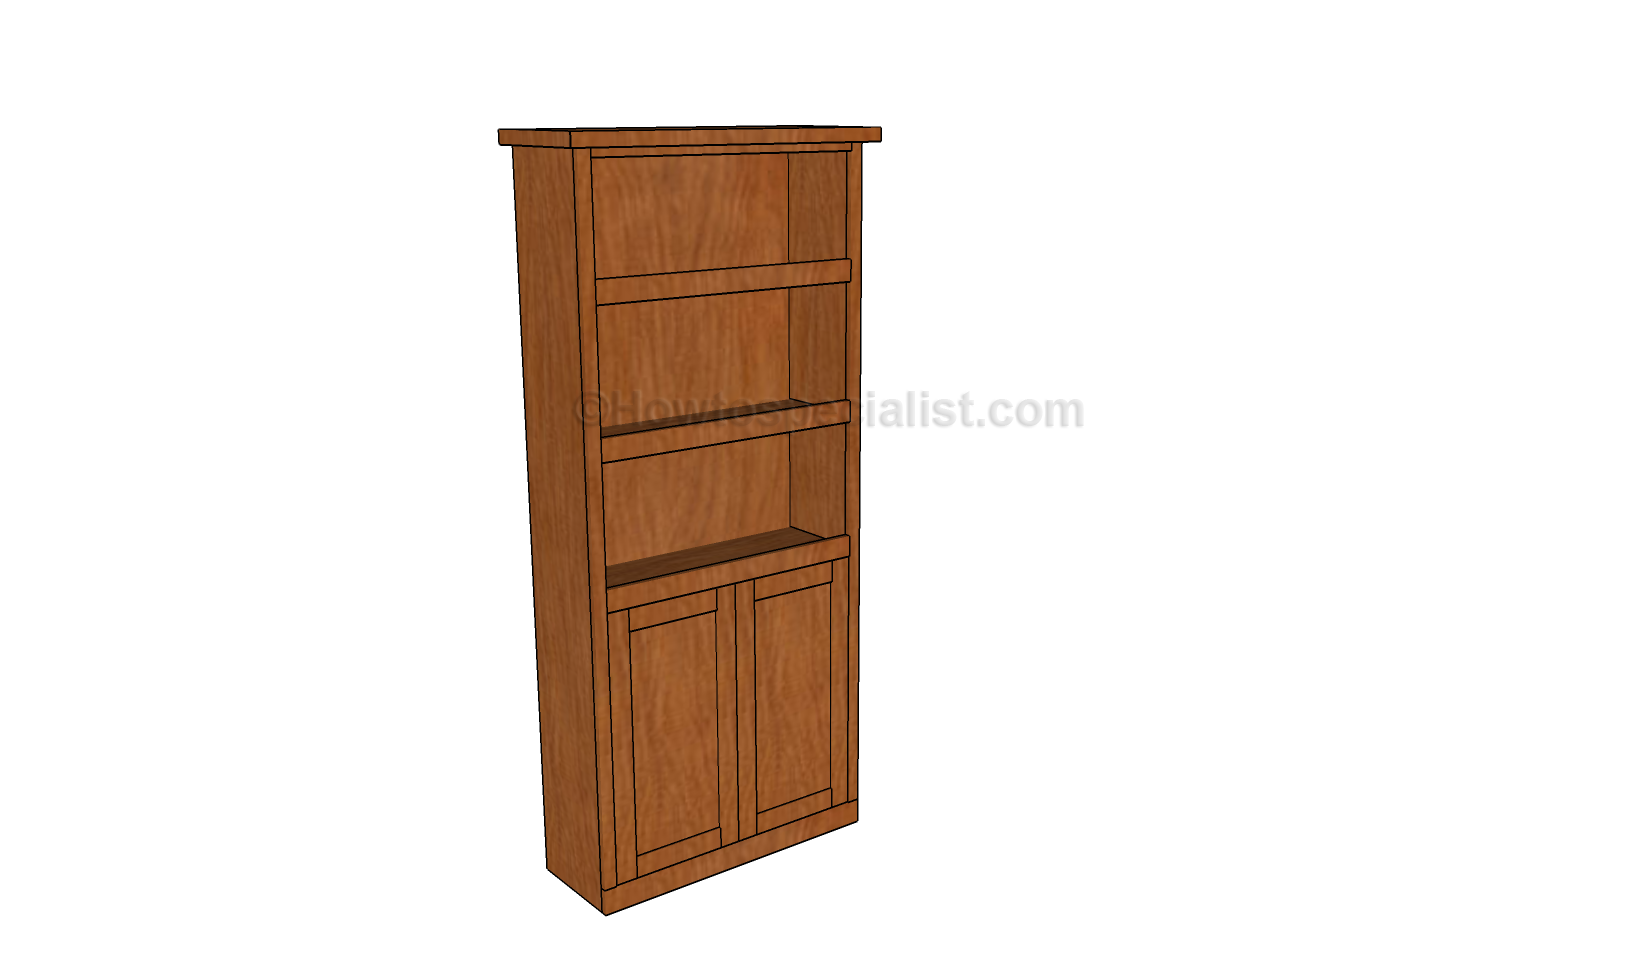 How To Make Wooden Cupboard Almirah Beds Wardrobes And Furniture